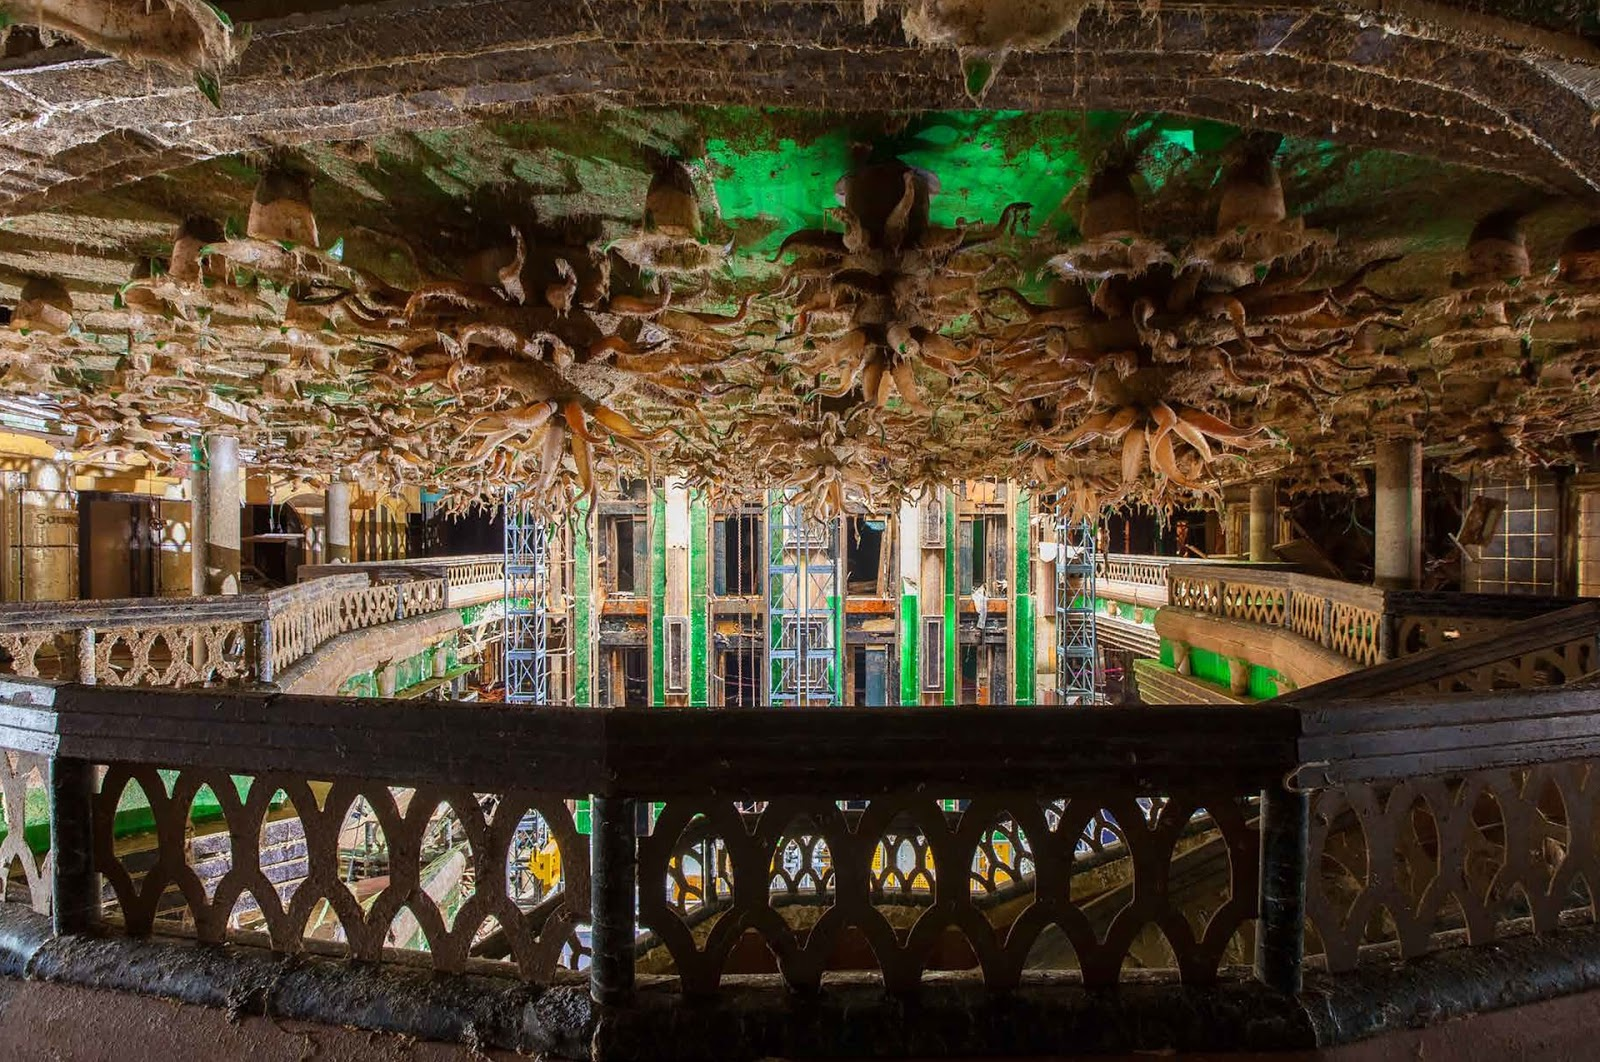 Deserted Places: Inside Costa Concordia cruise ship